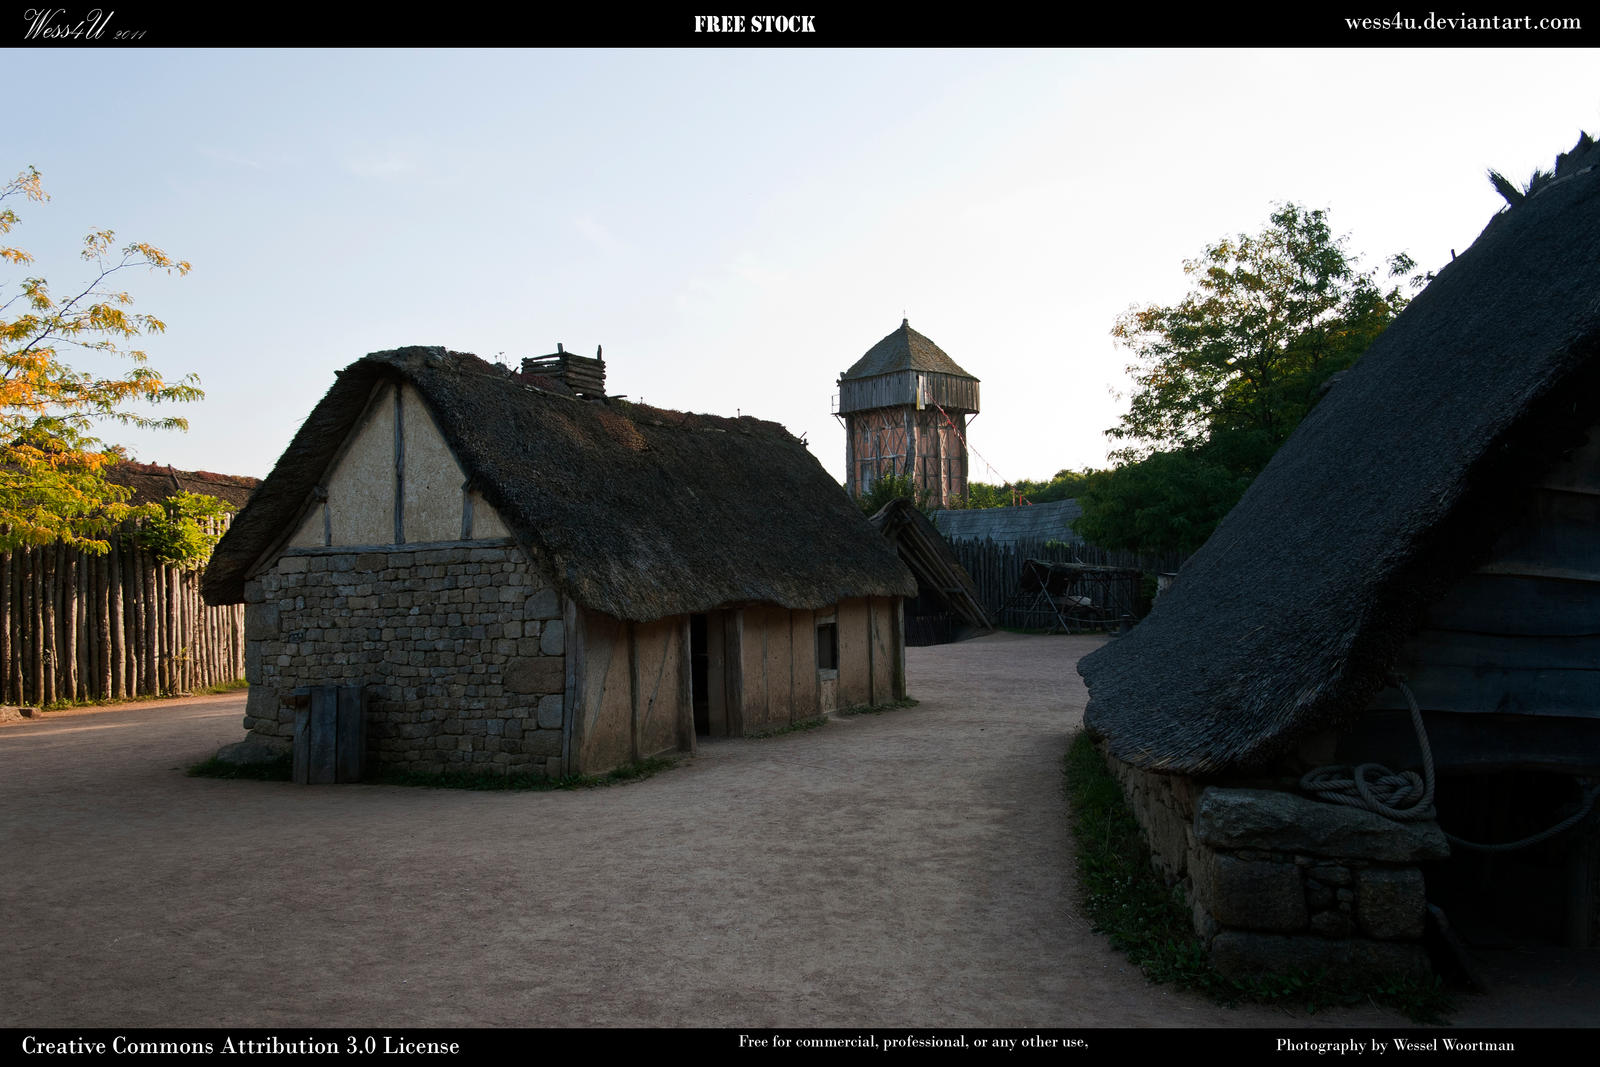 Medieval village 4 by Wess4u